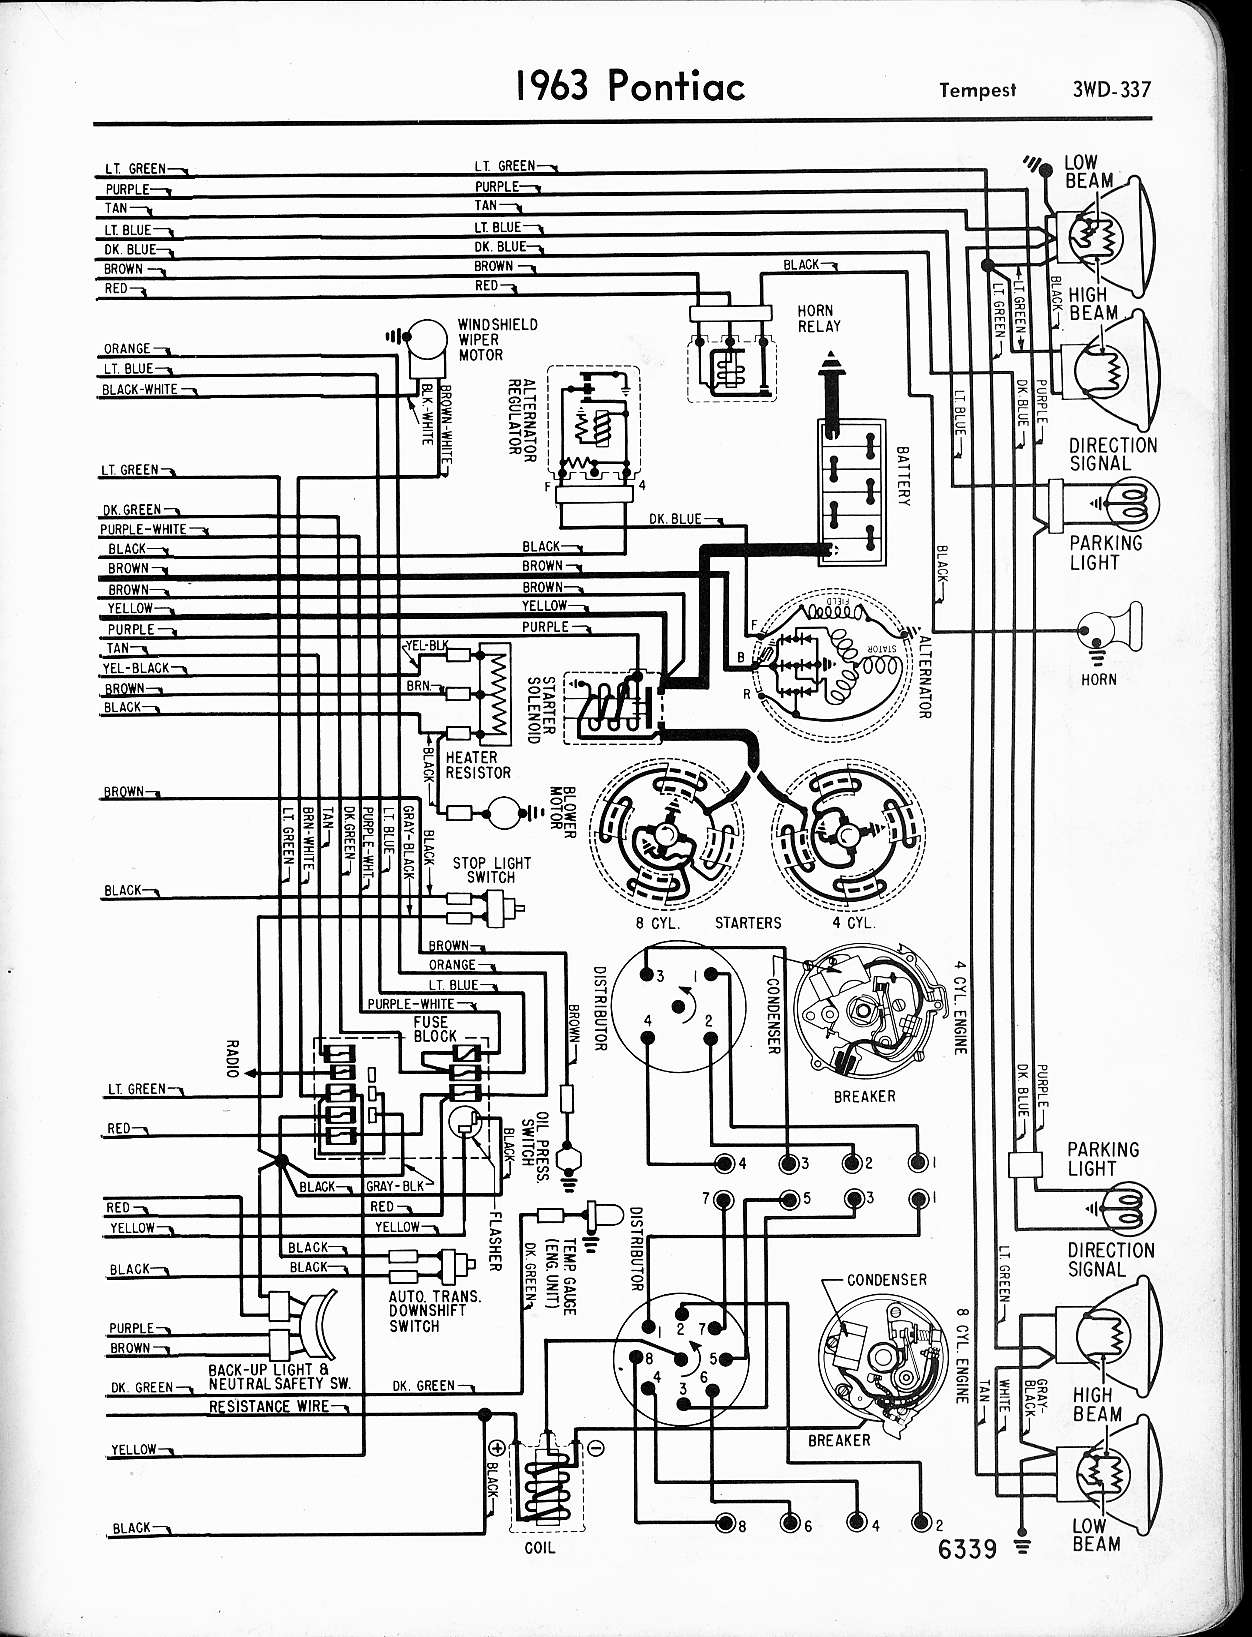 1967 pontiac gto engine diagram everything wiring diagramwrg 7679] 67 gto fuse box 1967 pontiac gto engine diagram source 67 gto engine wiring